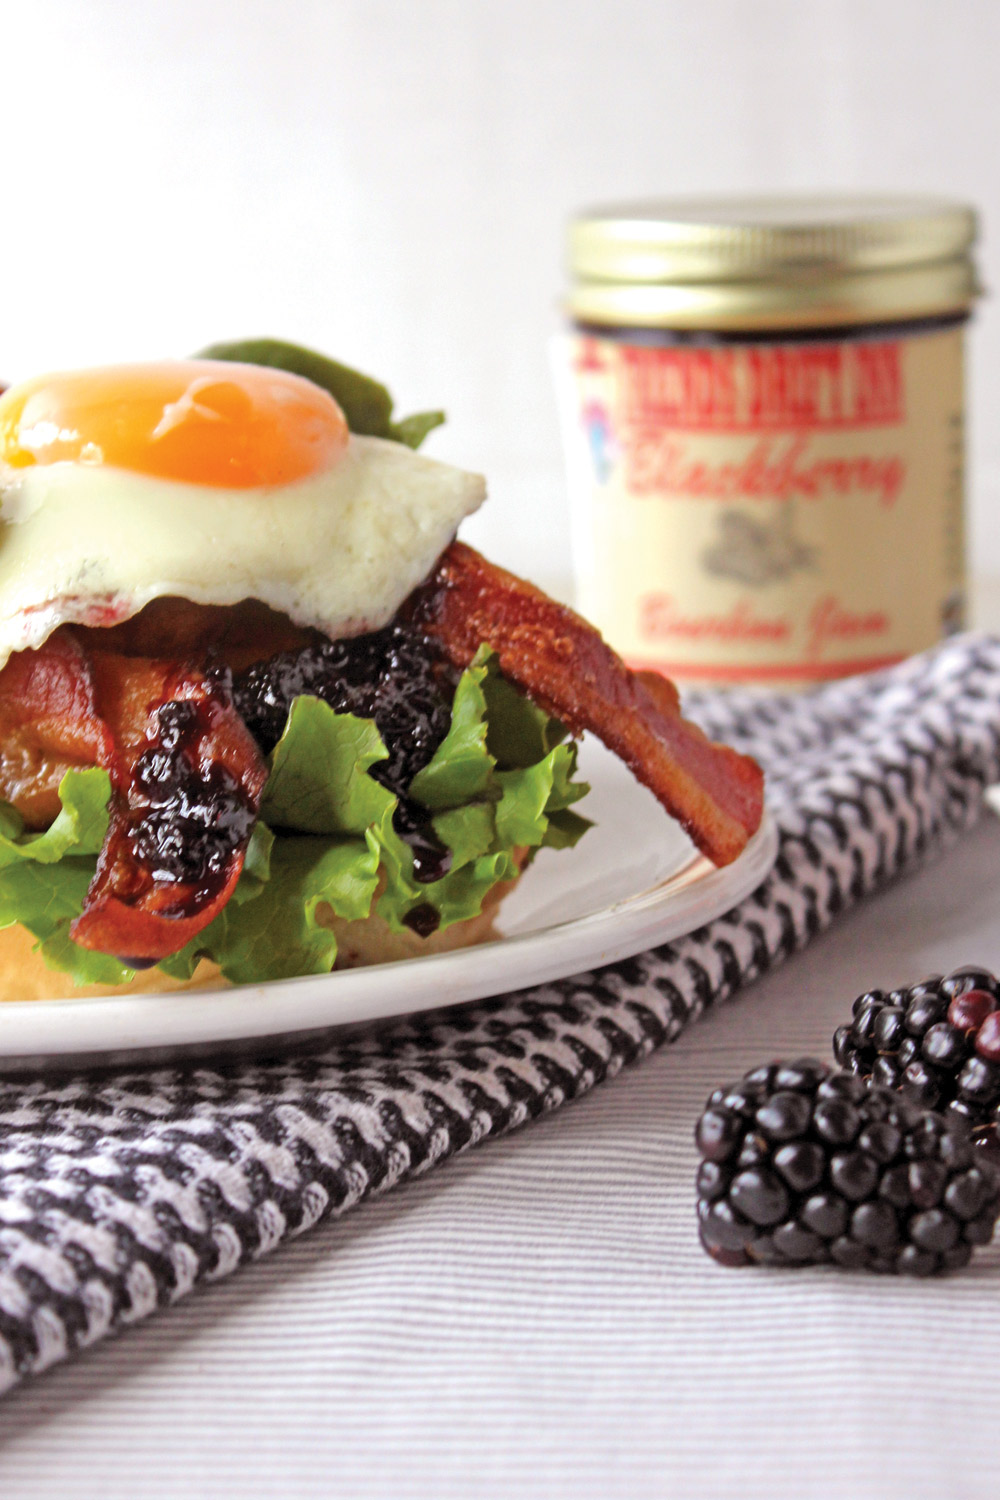 Friends Drift Inn Blackberry Bourbon Jam tops off delicious egg-topped hamburger